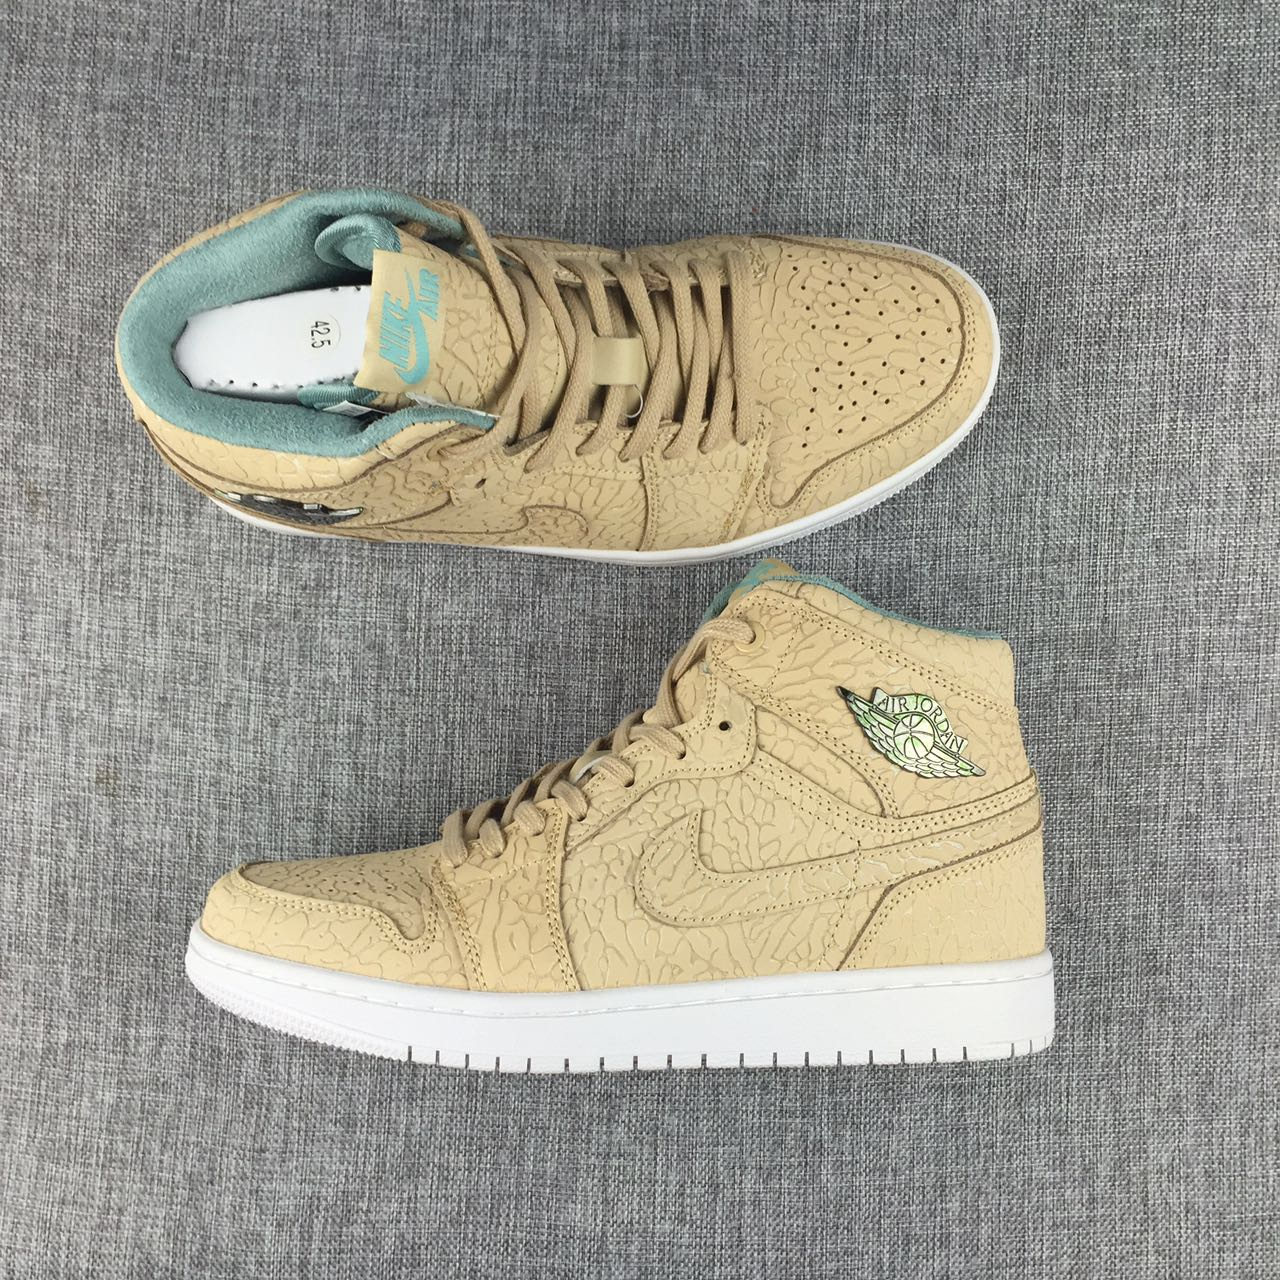 New Air Jordan 1 Pearl Yellow Shoes